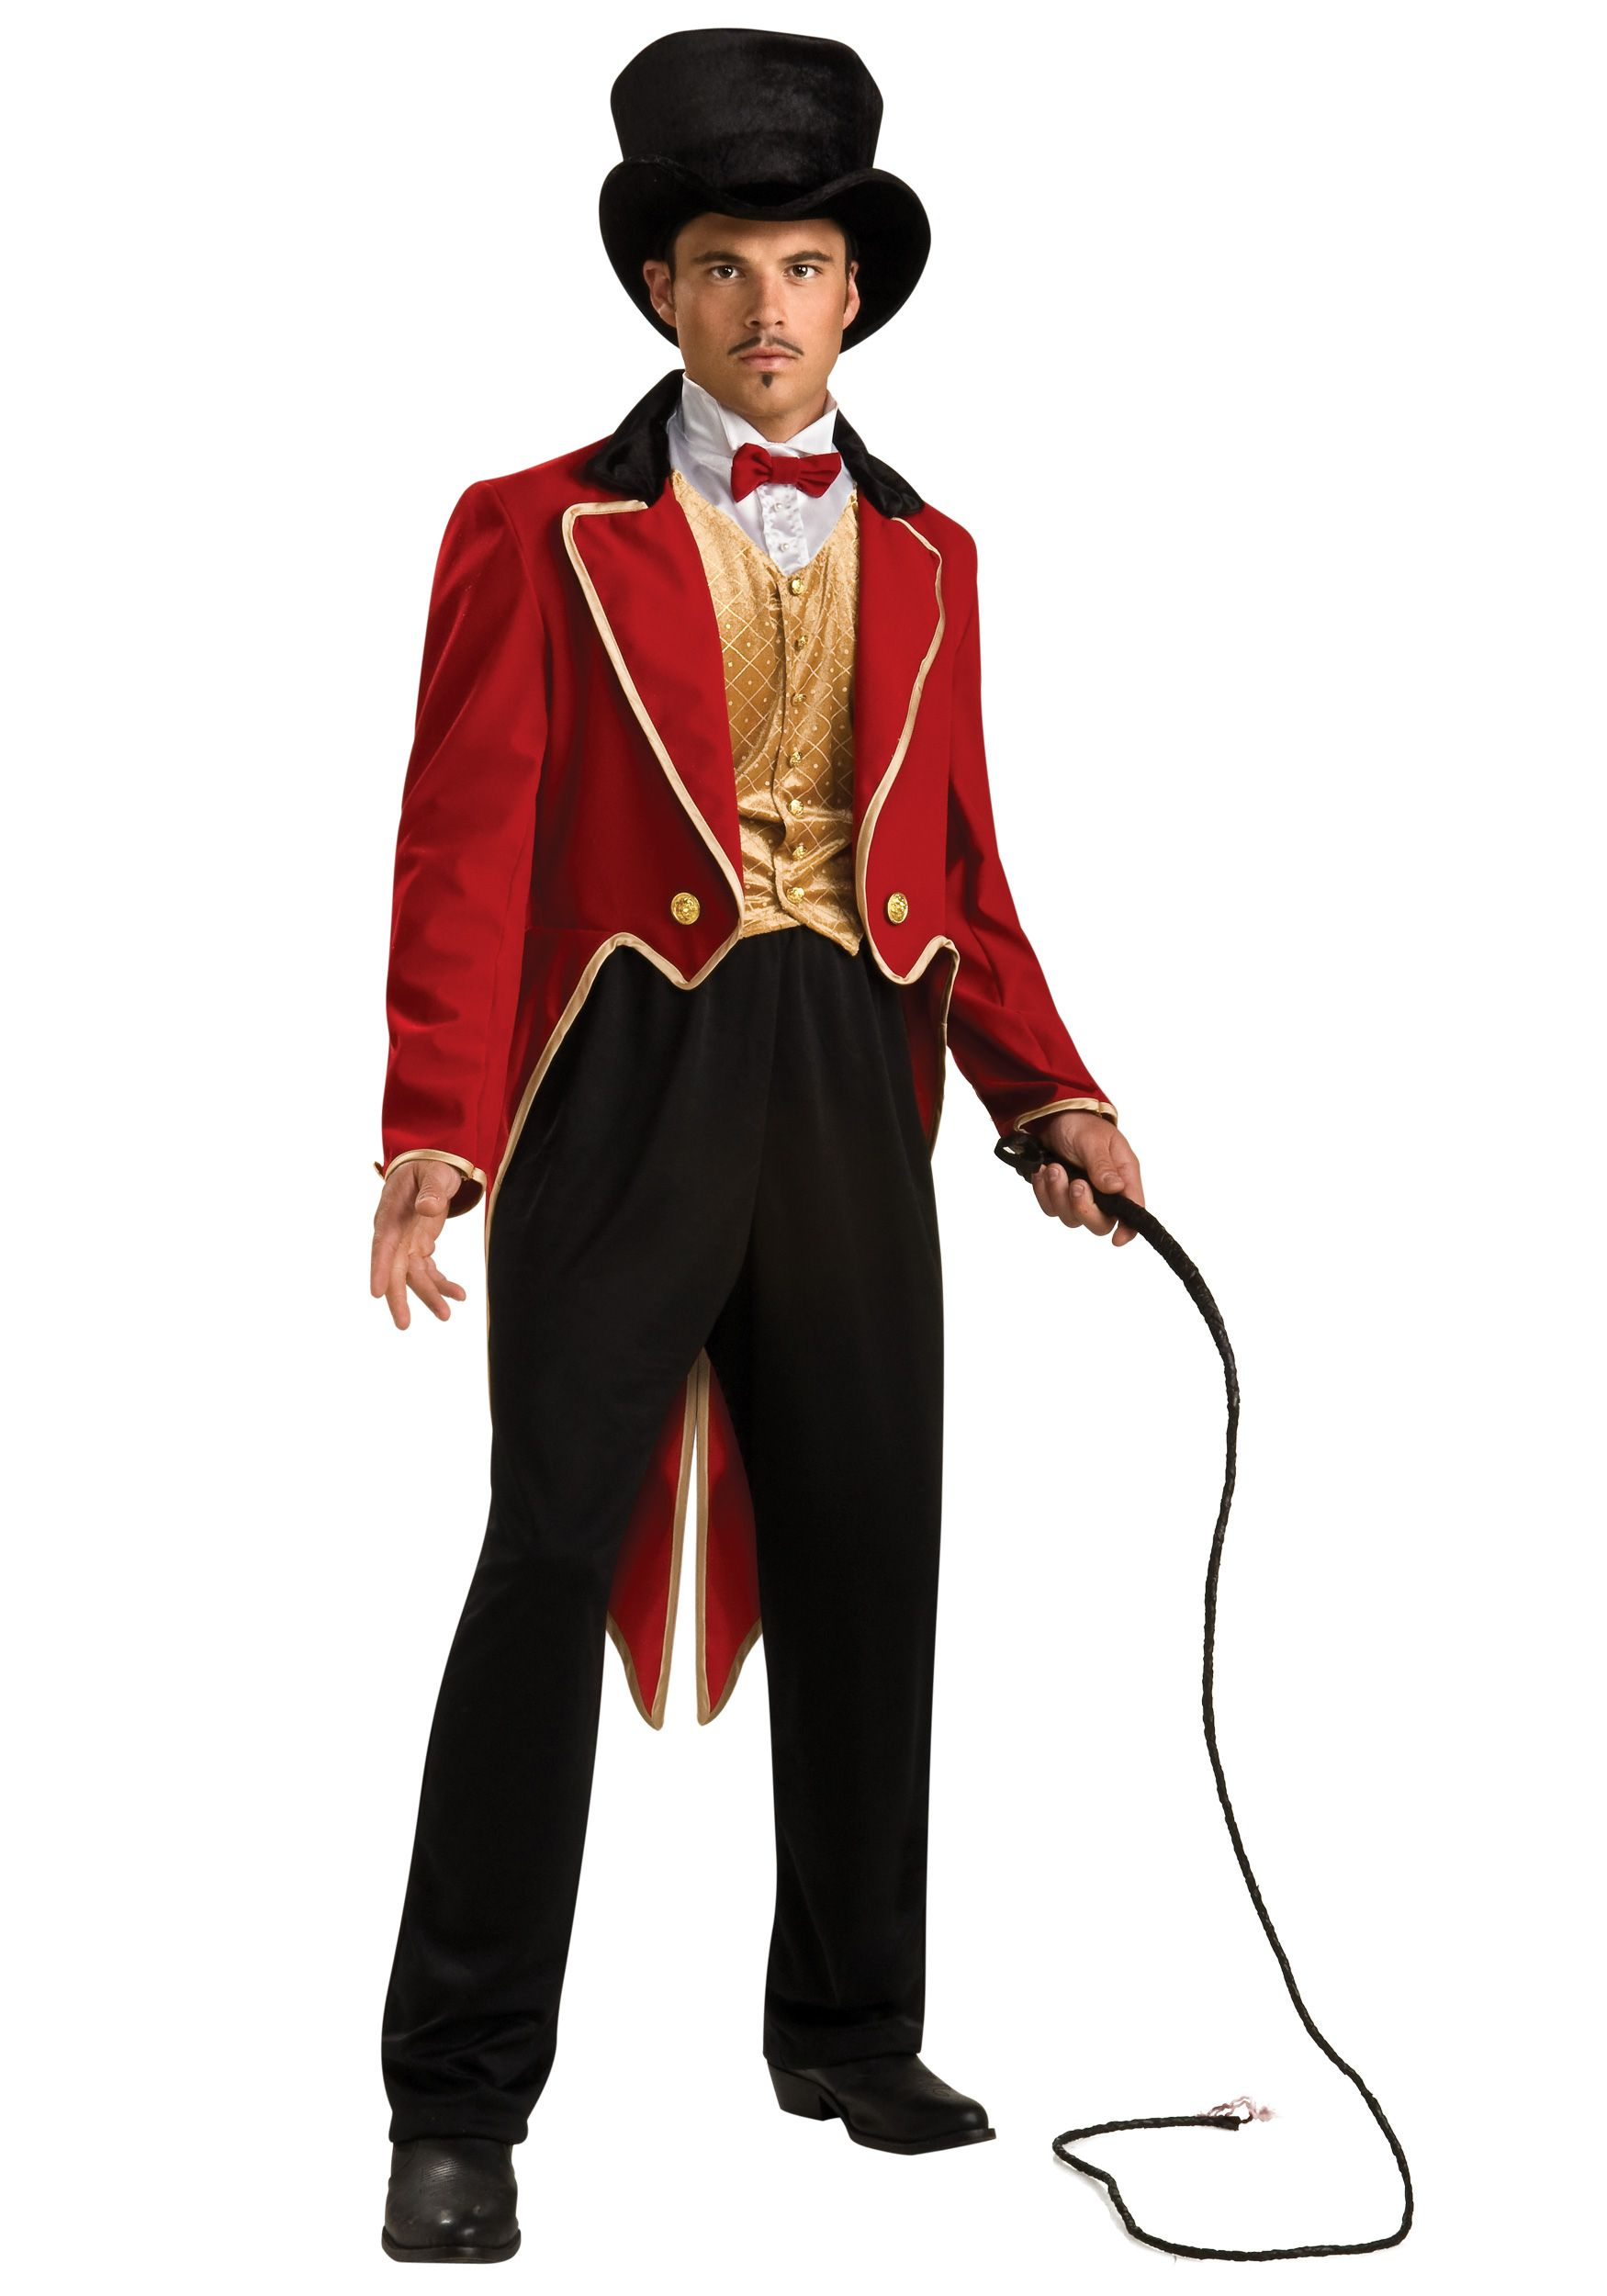 Mens Ringmaster Costume | Ringmaster costume, Costumes and Ring master